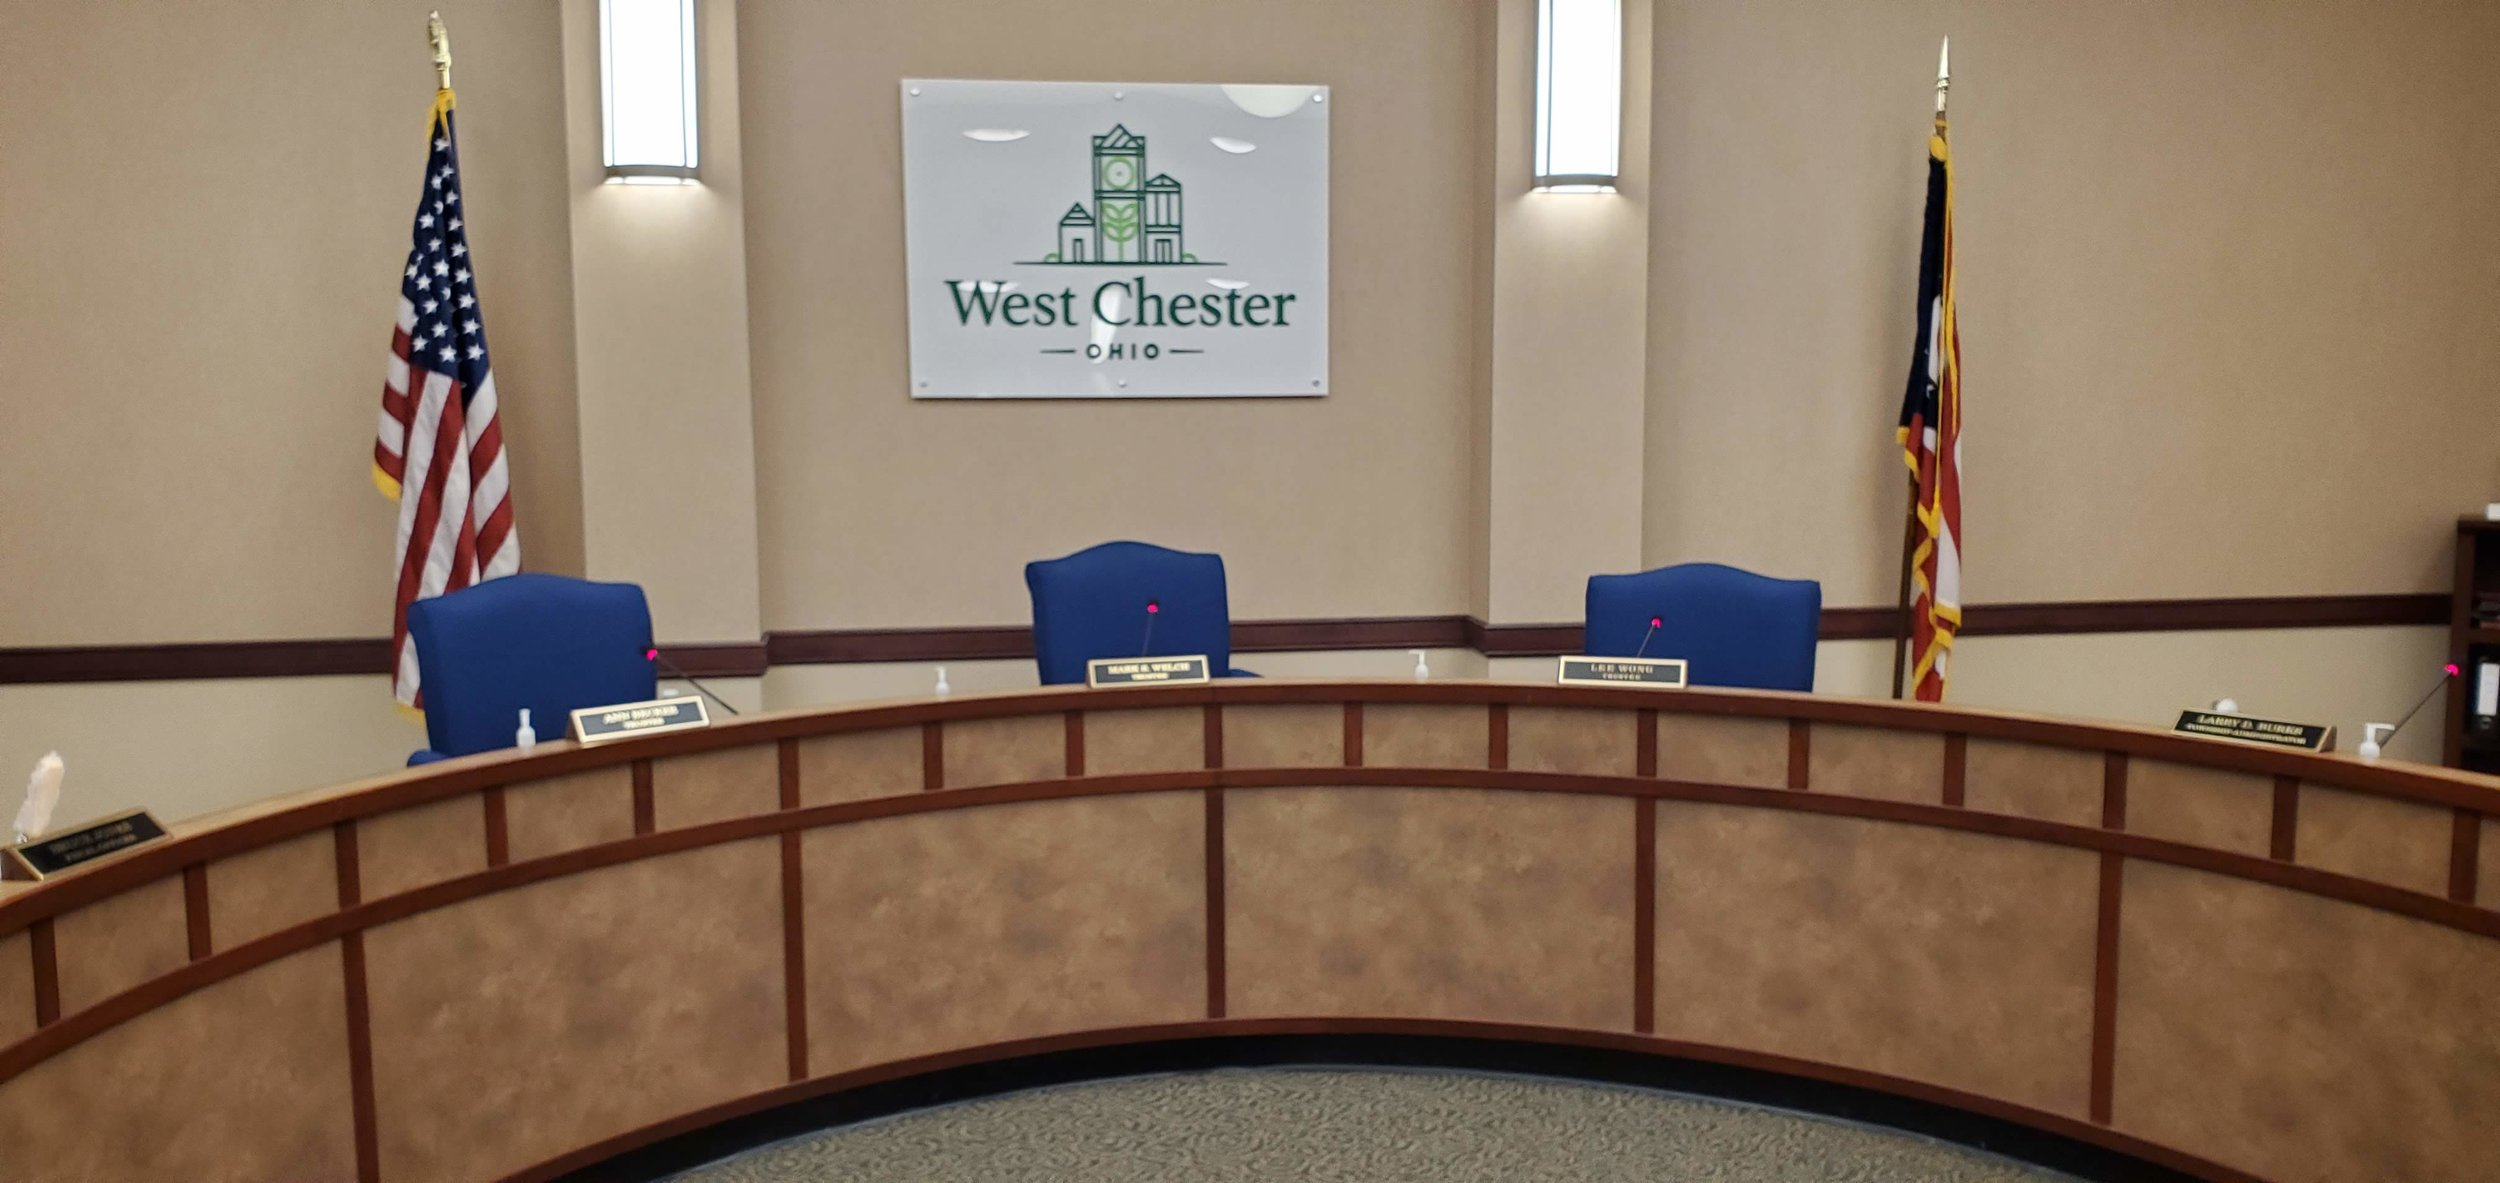 West Chester Town Hall